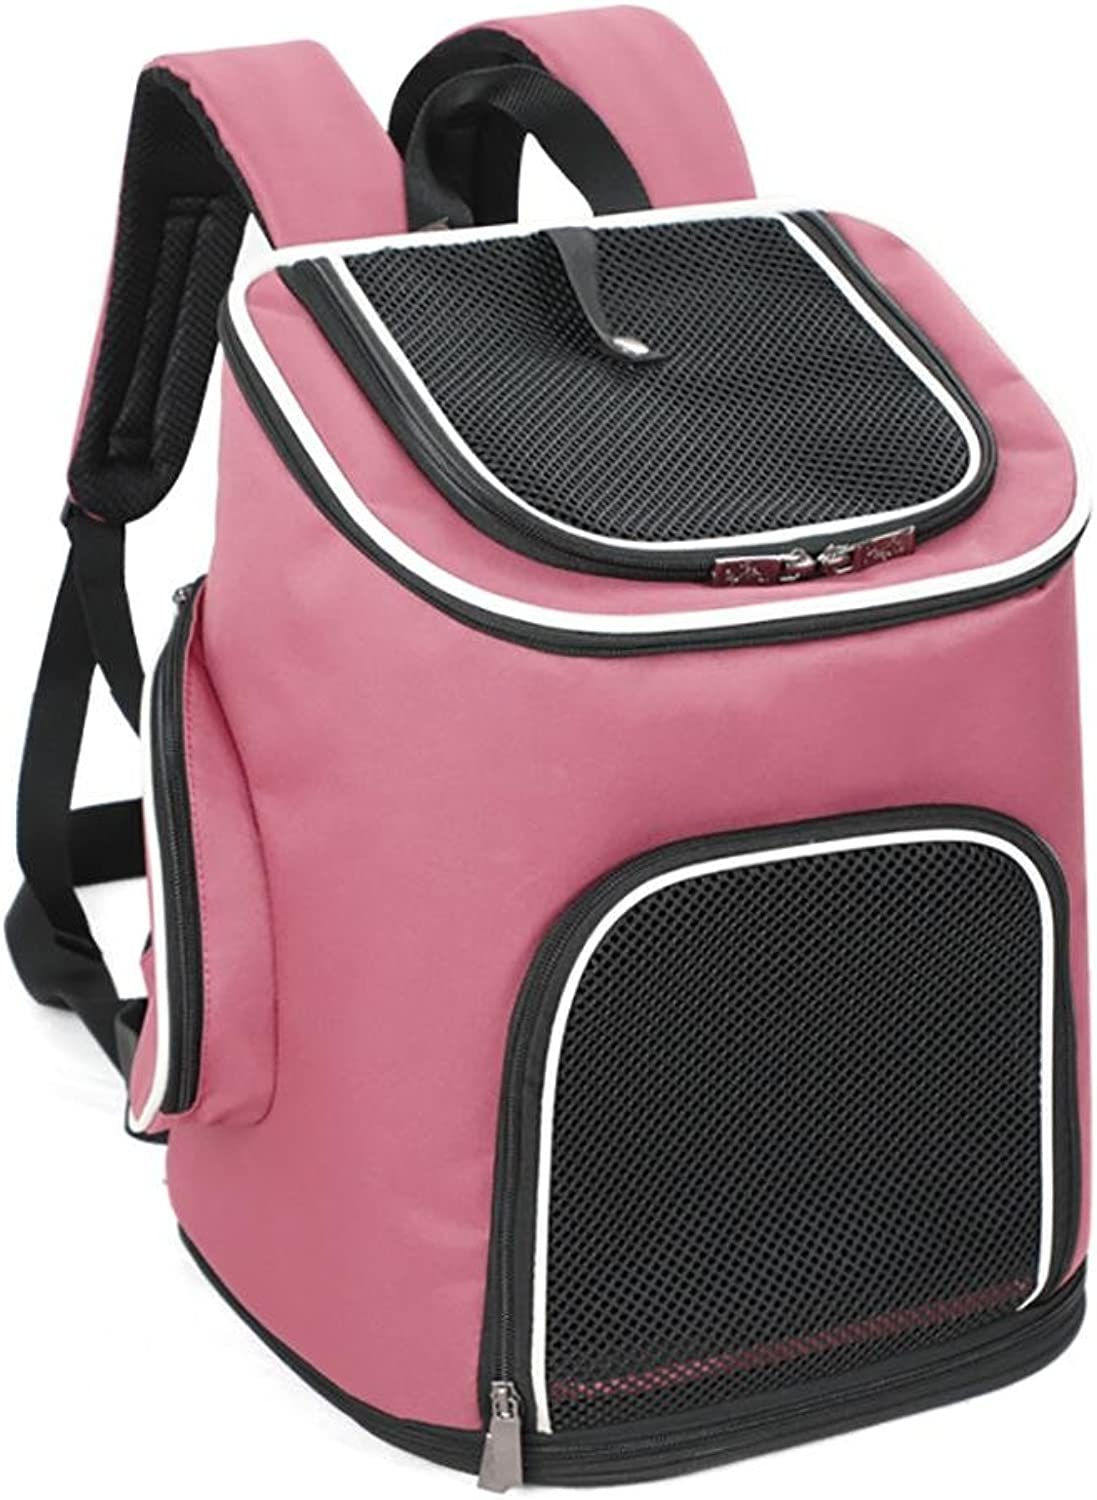 LOHUA Comfort Dogs Carriers Backpack Pet Bag with Good Ventilation